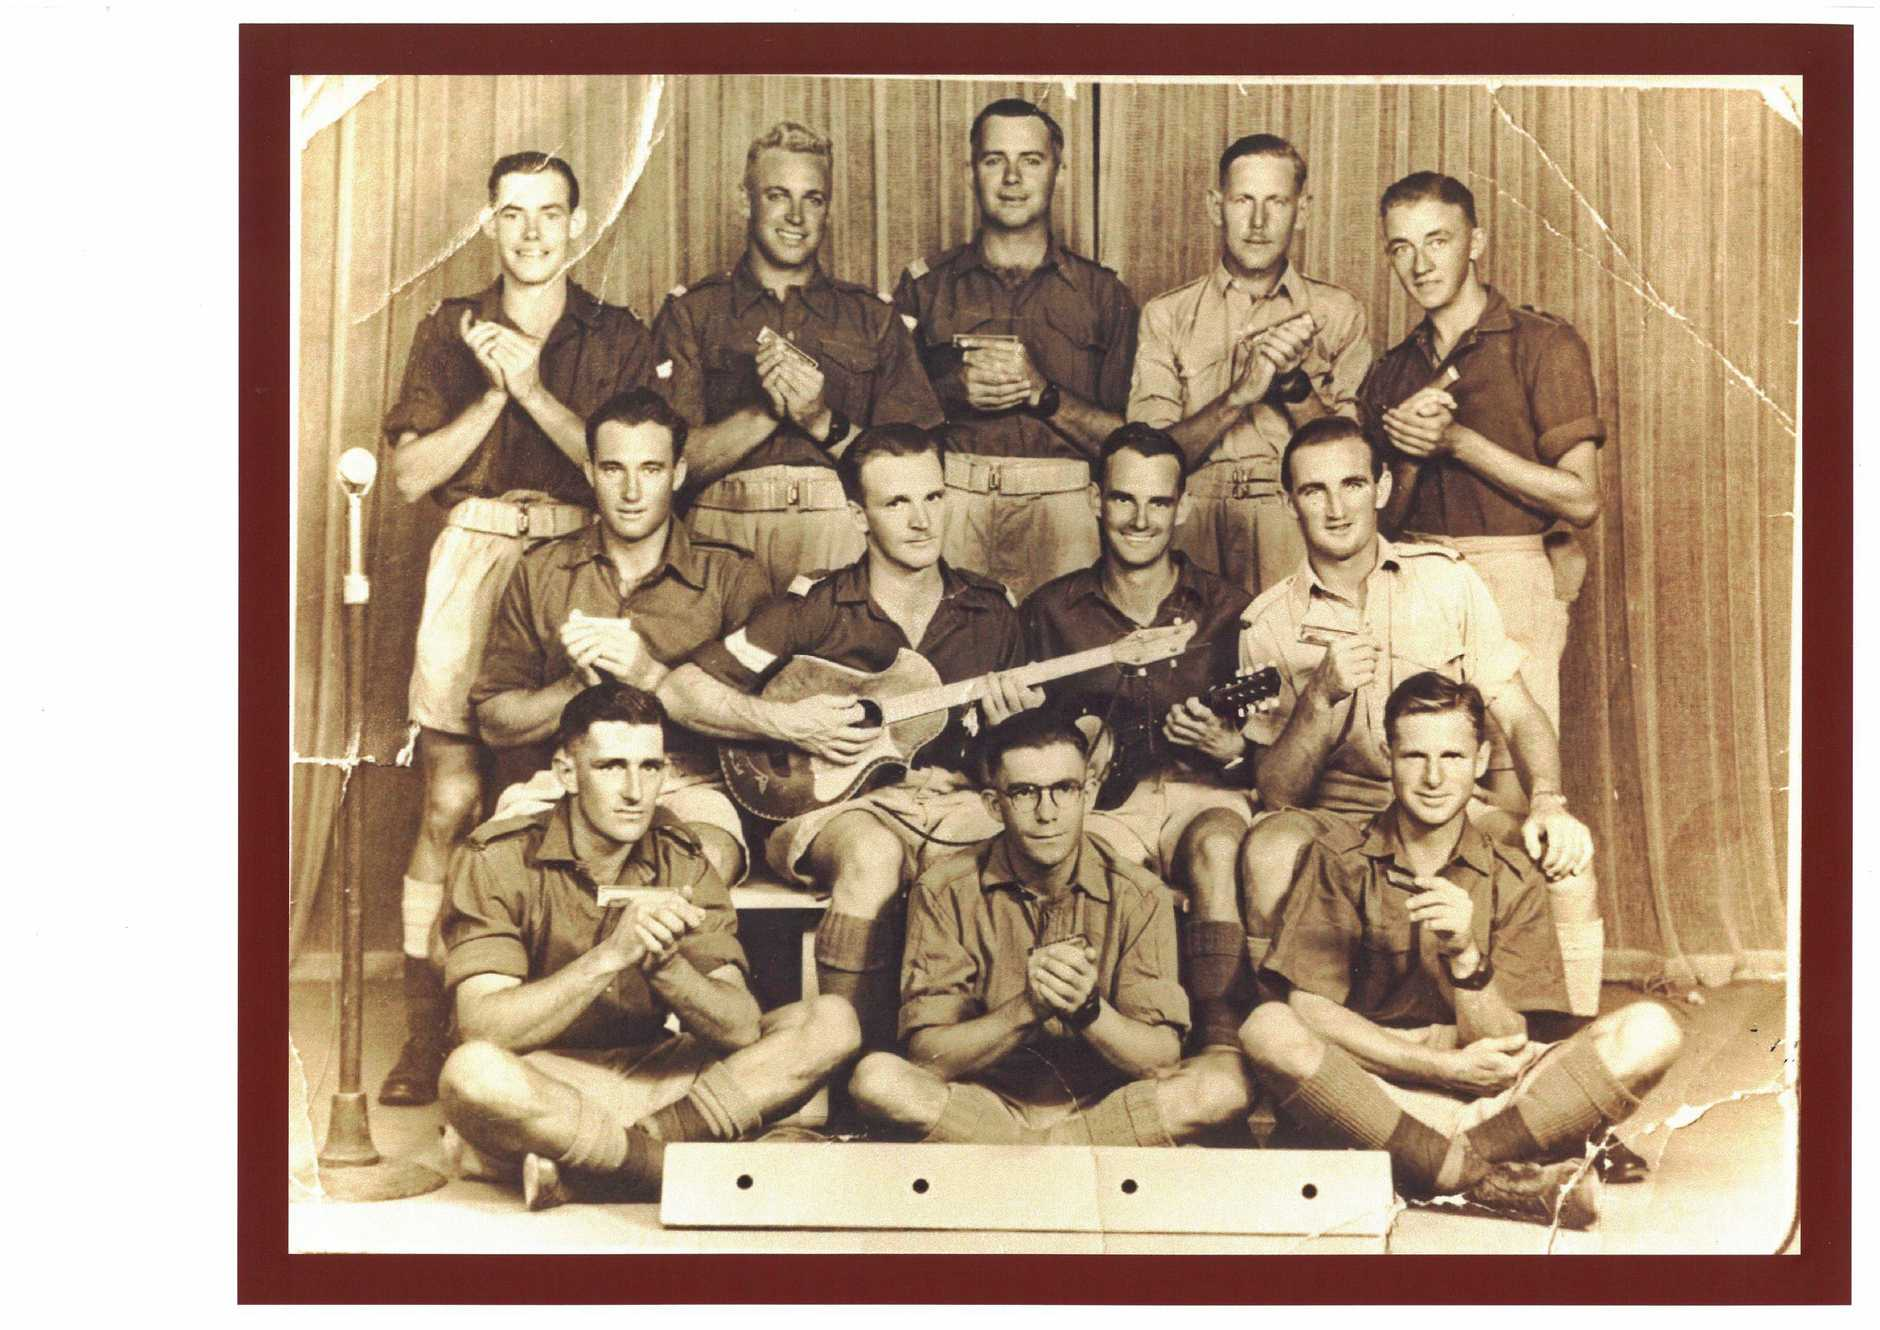 Signalman Con Robinson (bottom left, with his mouth organ band) served in Hollandia and Morotai during World War II.